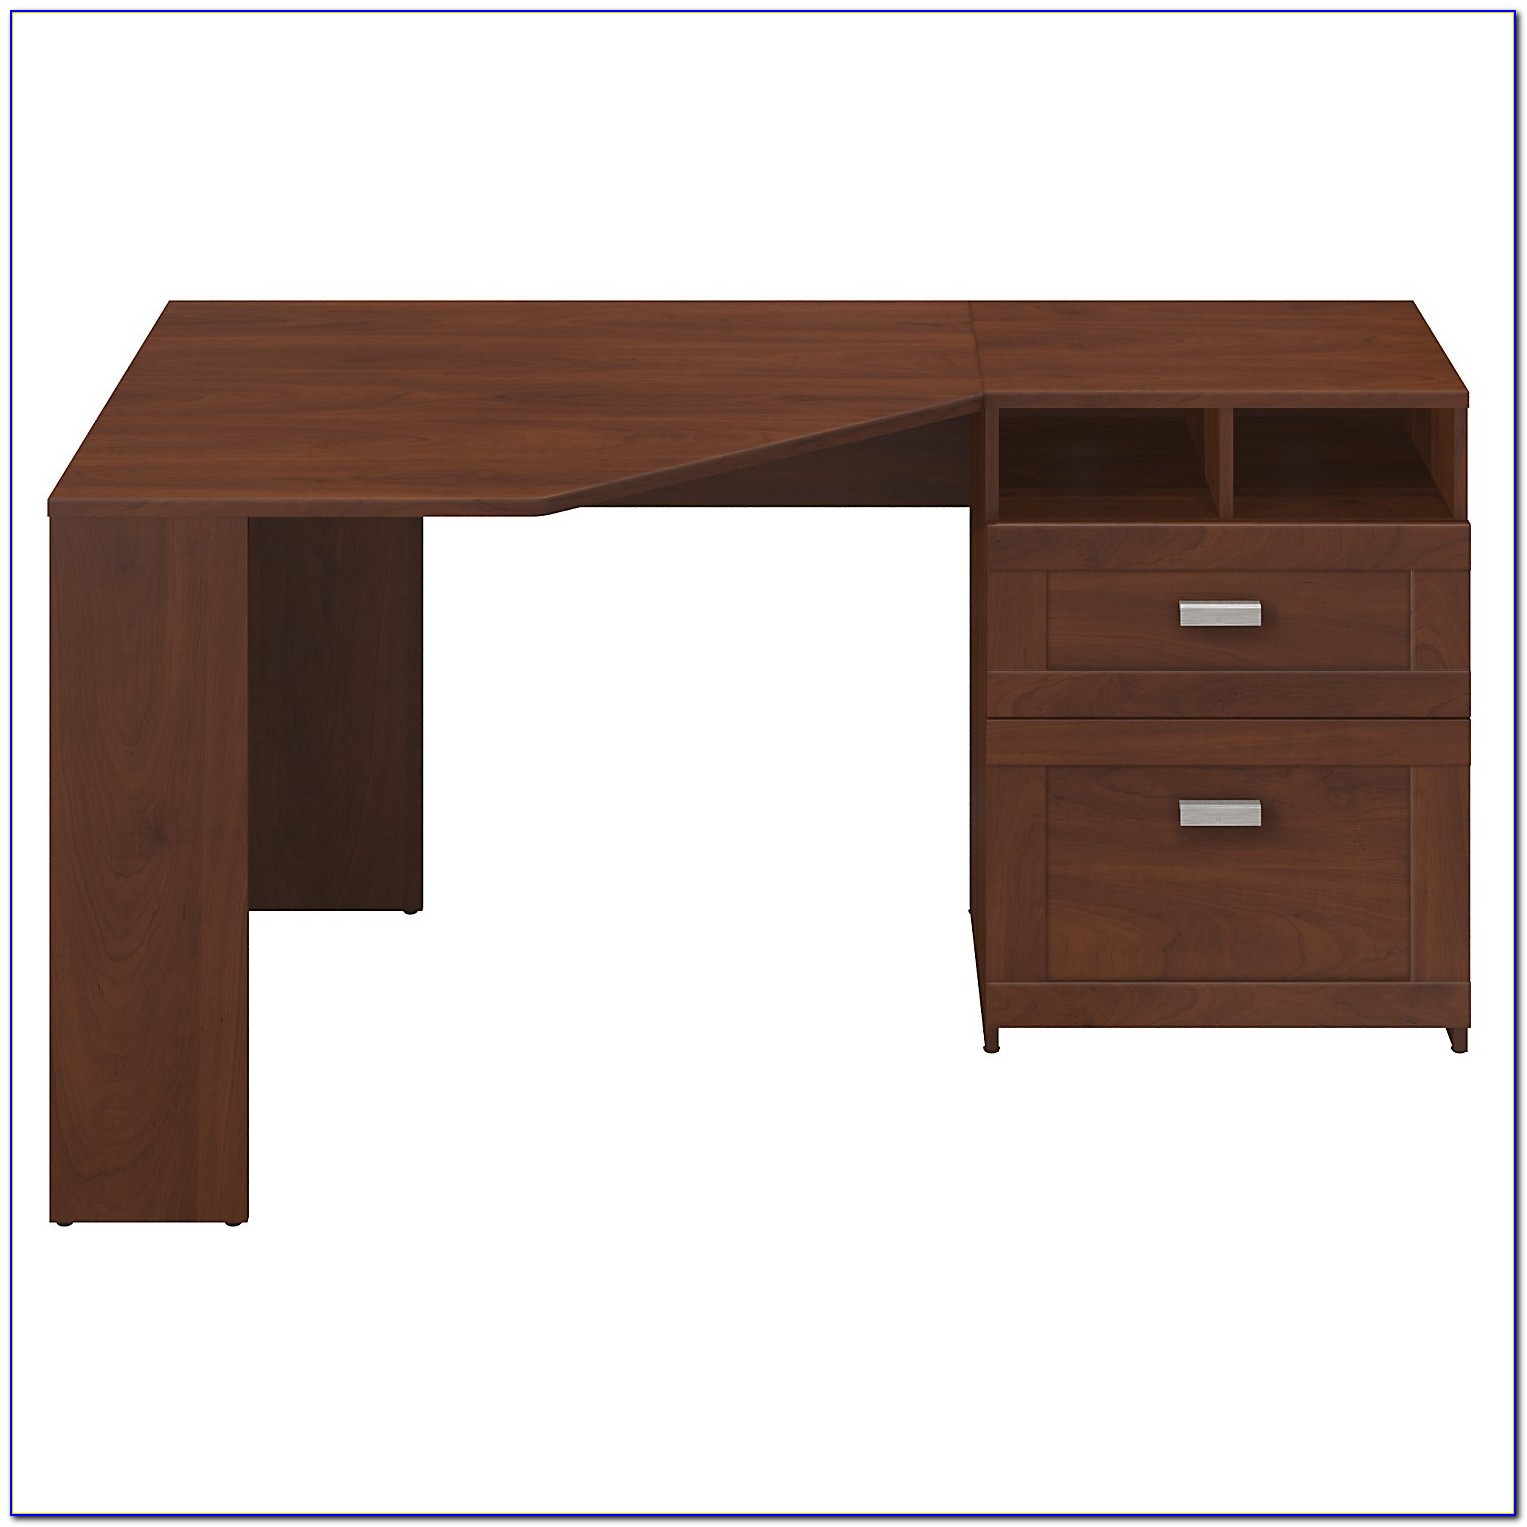 Bush Furniture Corner Desk Assembly Instructions